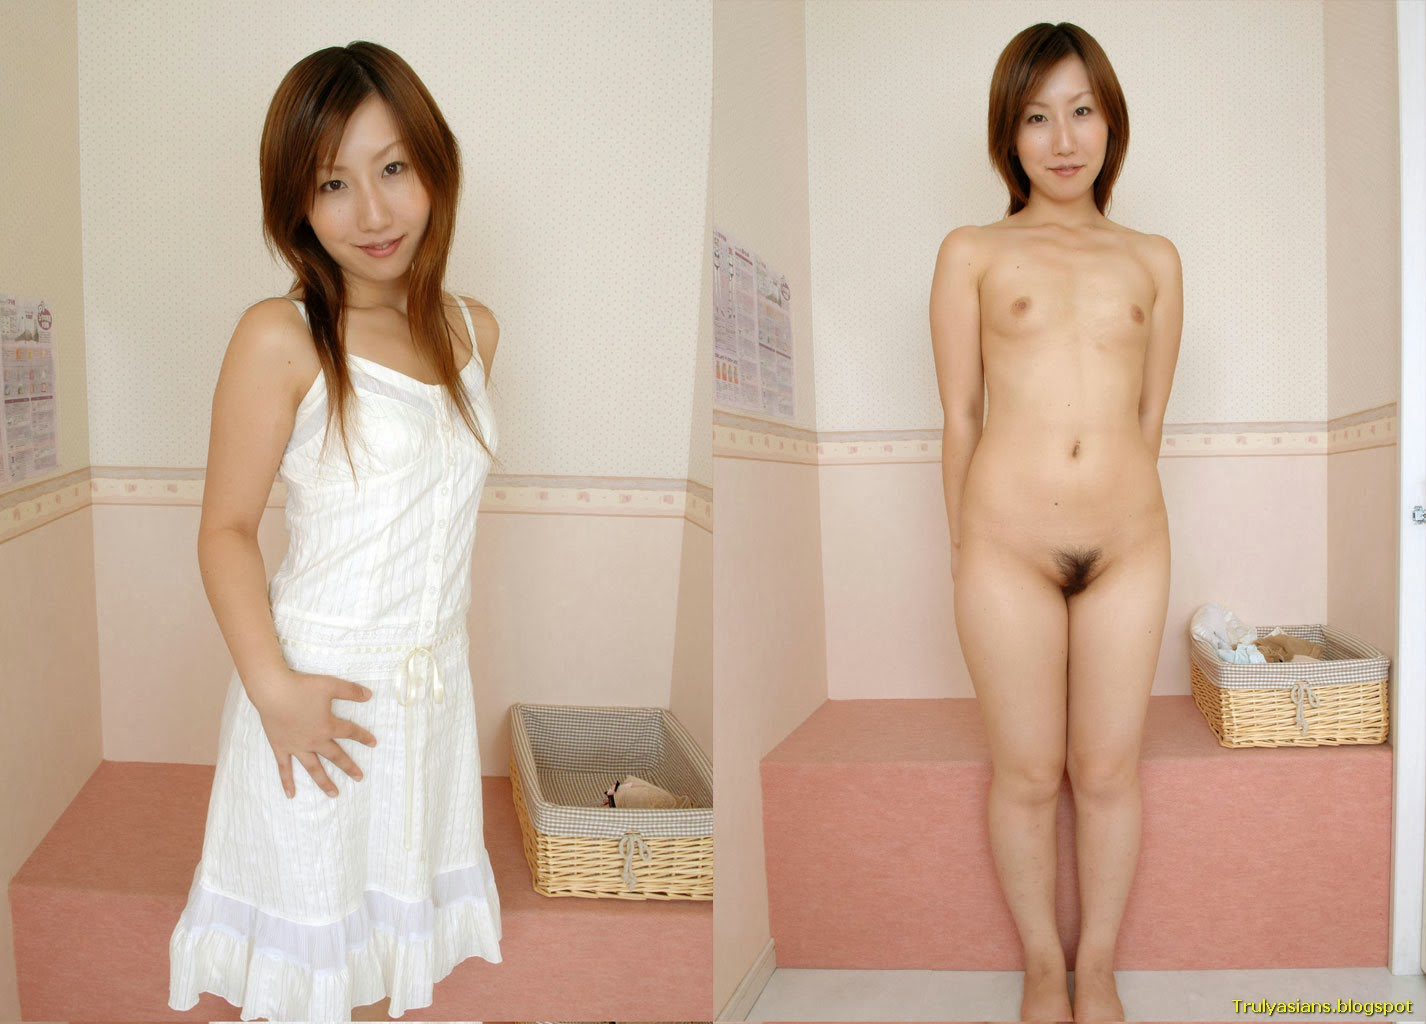 asian dressedundressed series Truly Asians: Japanese Amateur Ladies Posing Dressed and Undressed (103  pics)